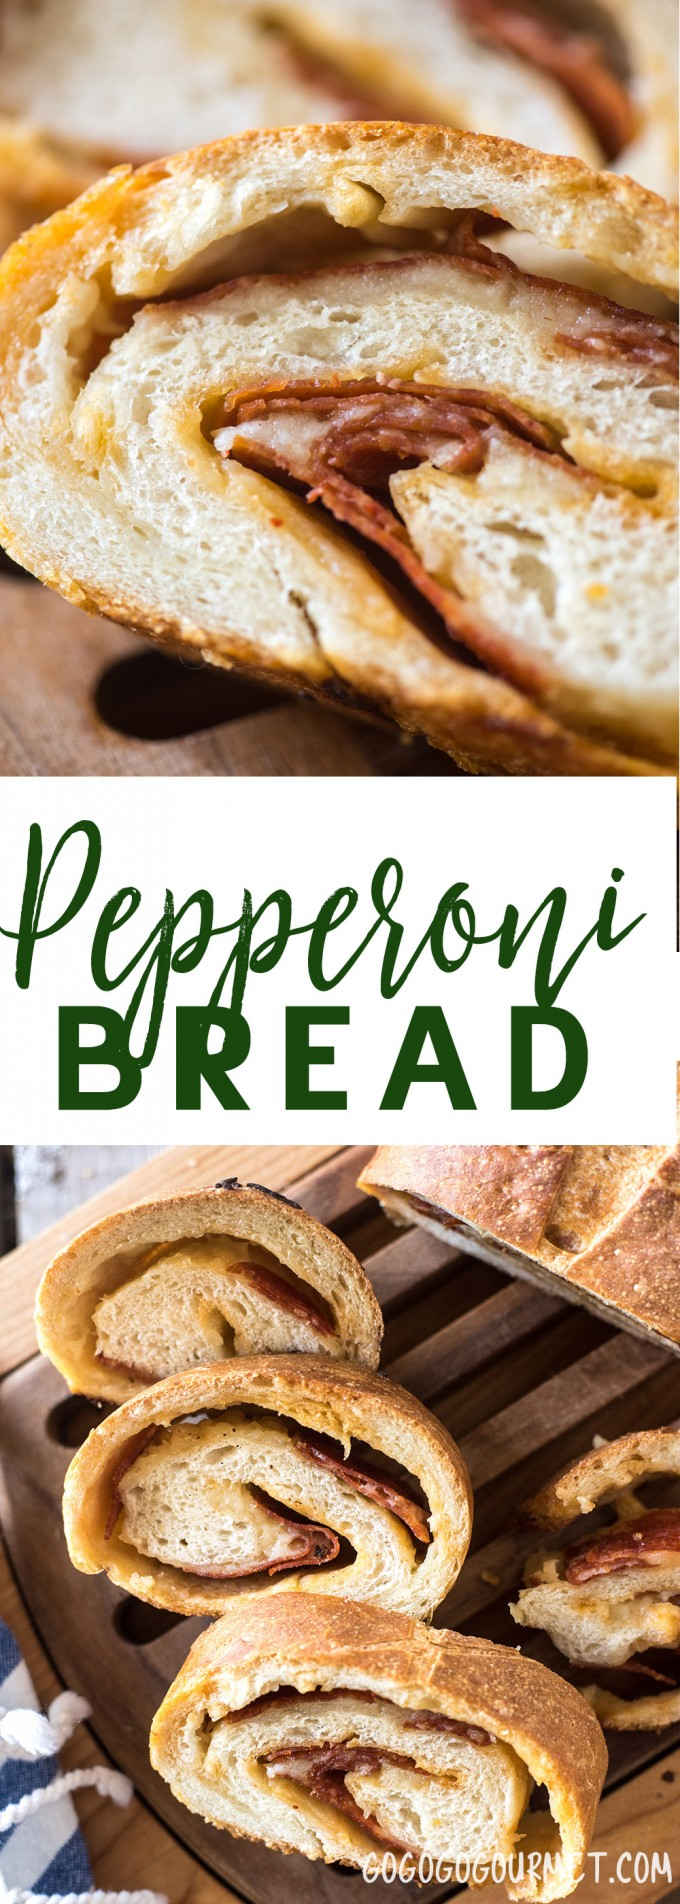 This Pepperoni Bread is a loaf of crusty outside and soft inside Italian bread stuffed with layers of pepperoni and cheese. |